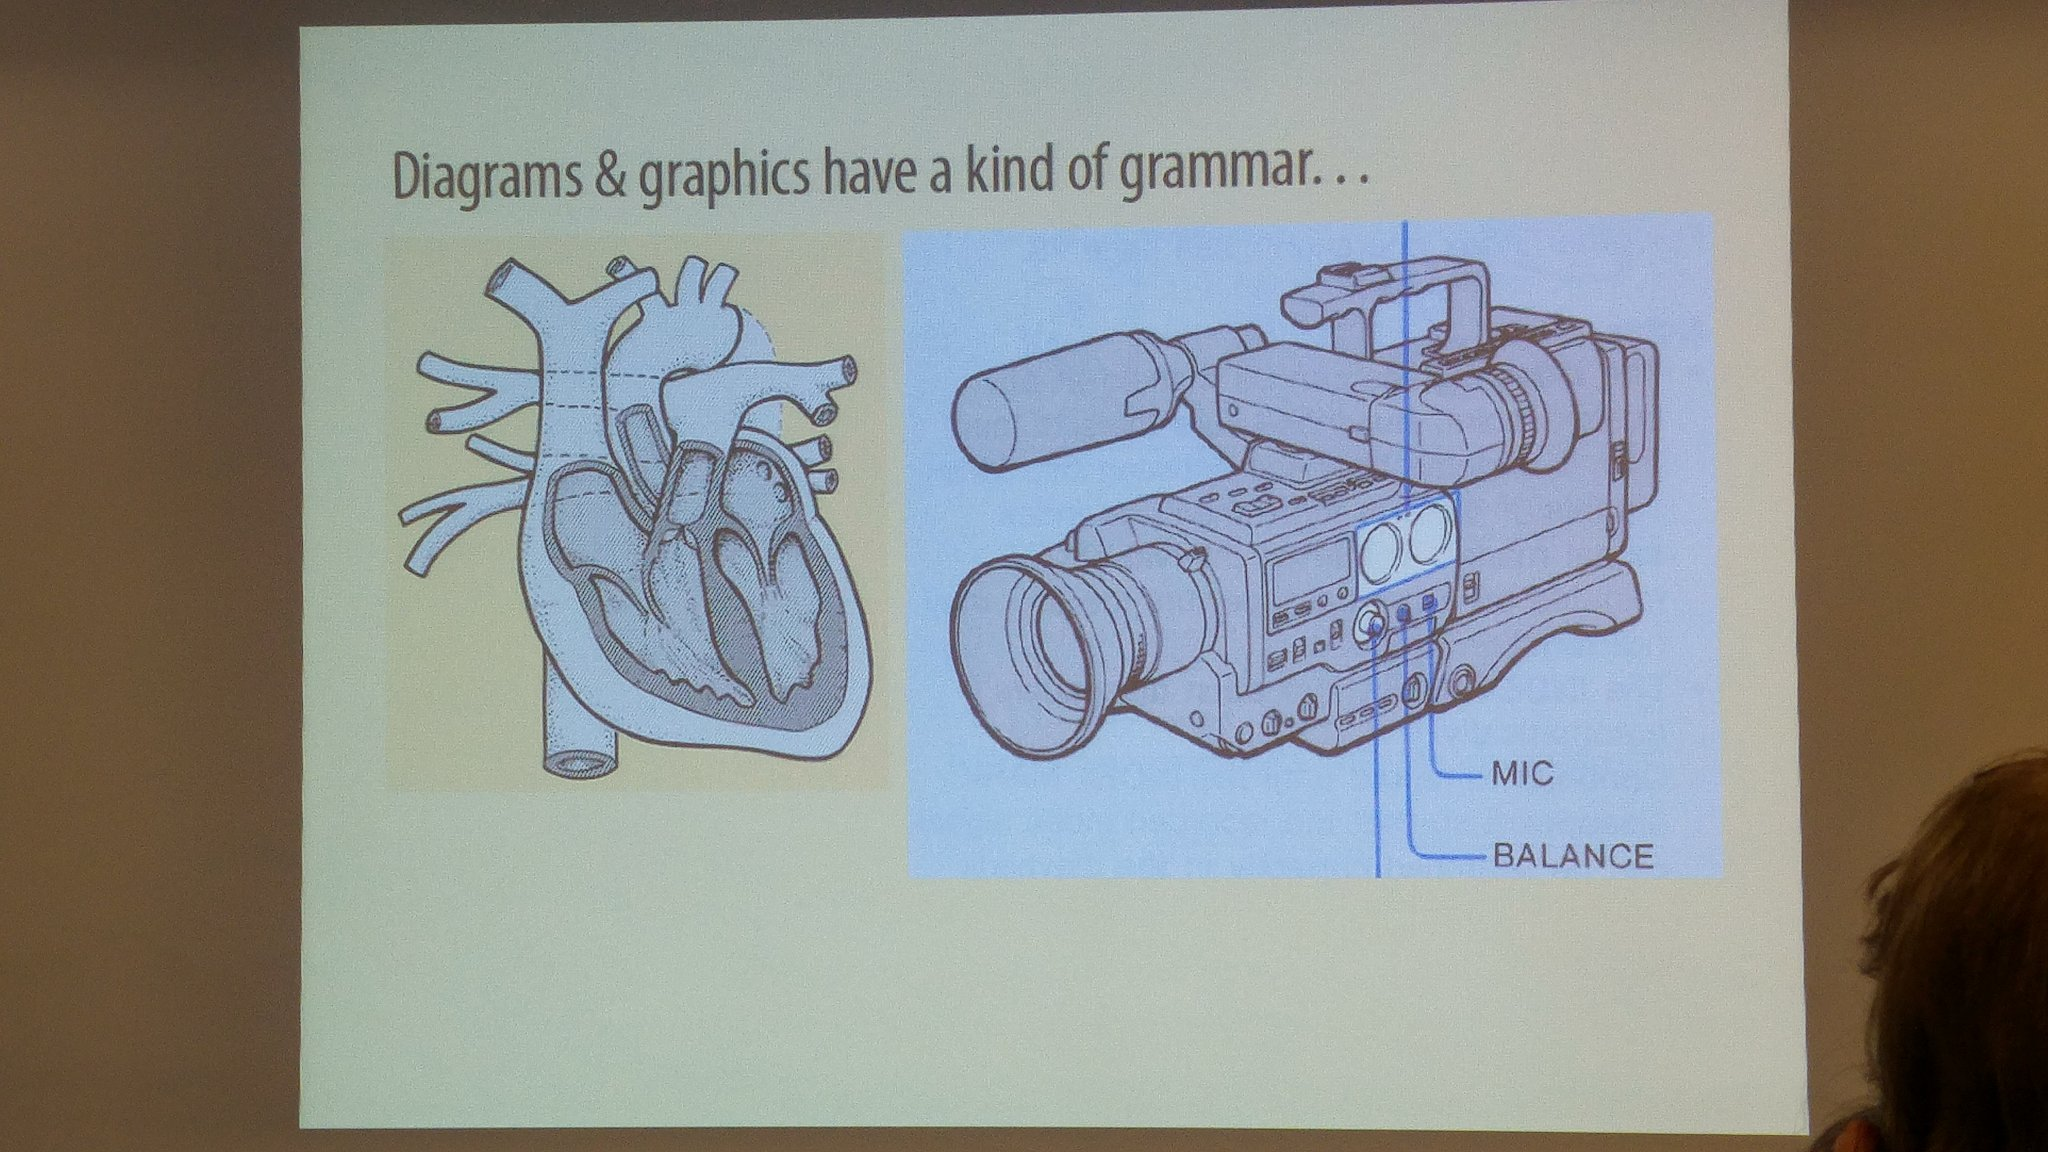 Diagrams and tech drawings involve deliberate simplification #infodesign #netikx83 https://t.co/uGsOw8QSVR